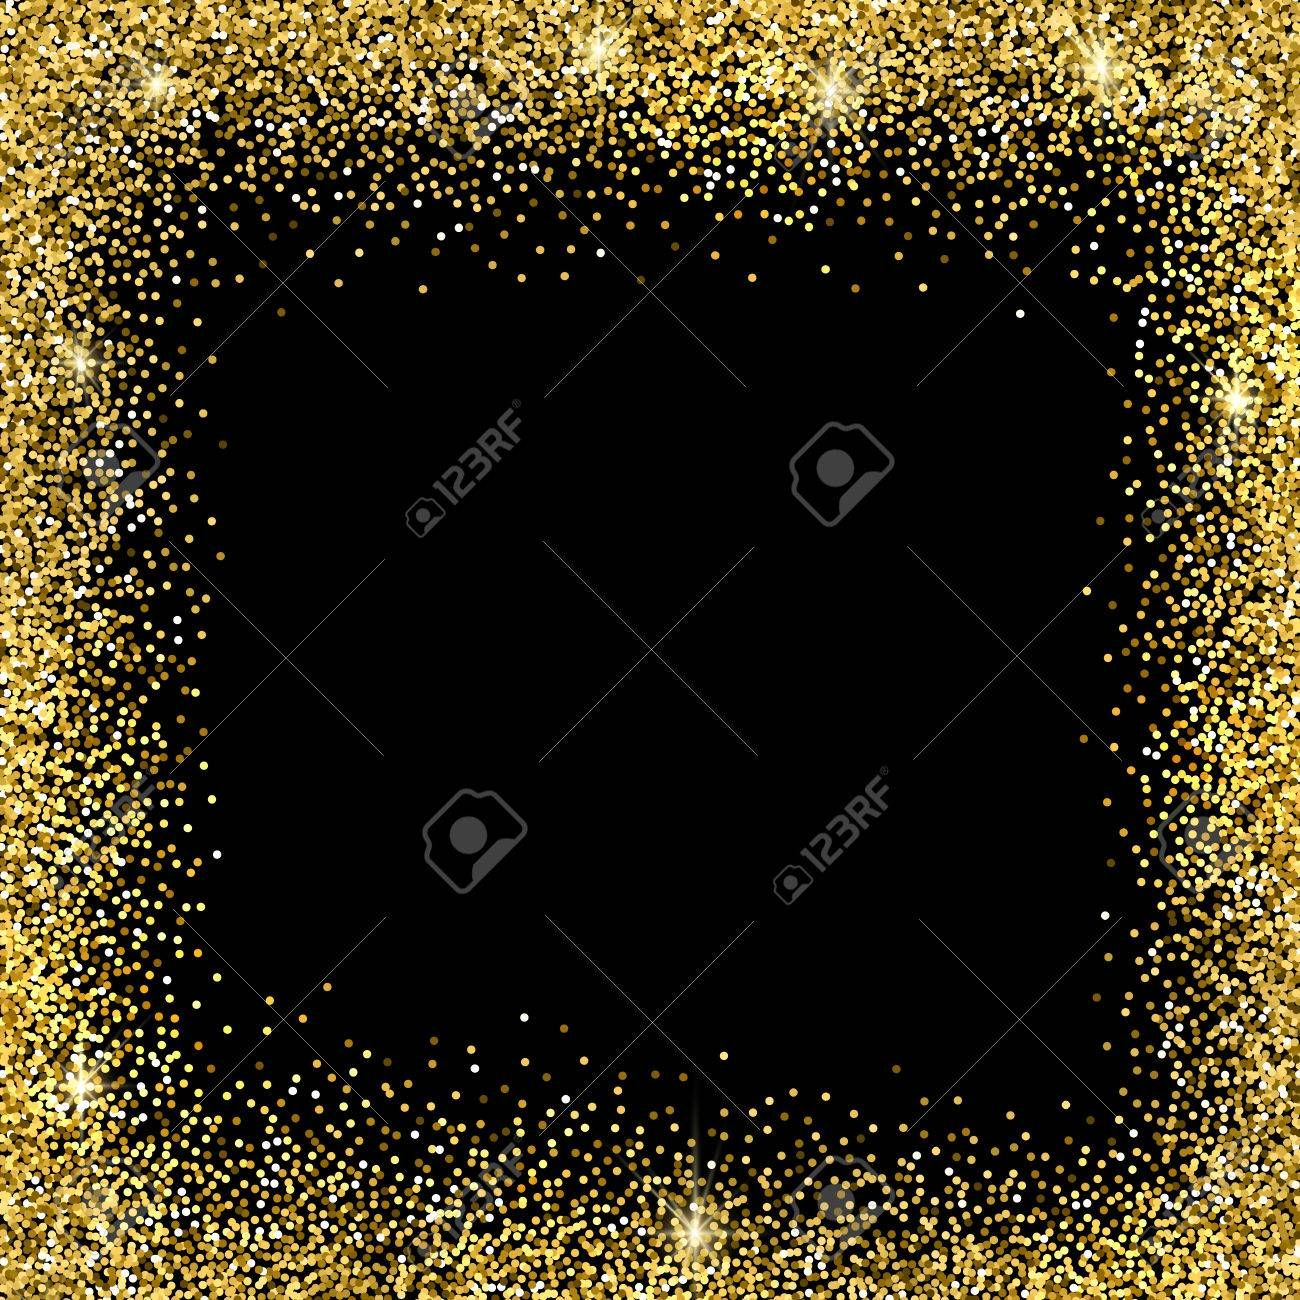 Gold sparkles on black background. Gold glitter background. Illustration , #SPONSORED, #black, #sparkles, #Gold, #Illustration, #glitter #goldglitterbackground